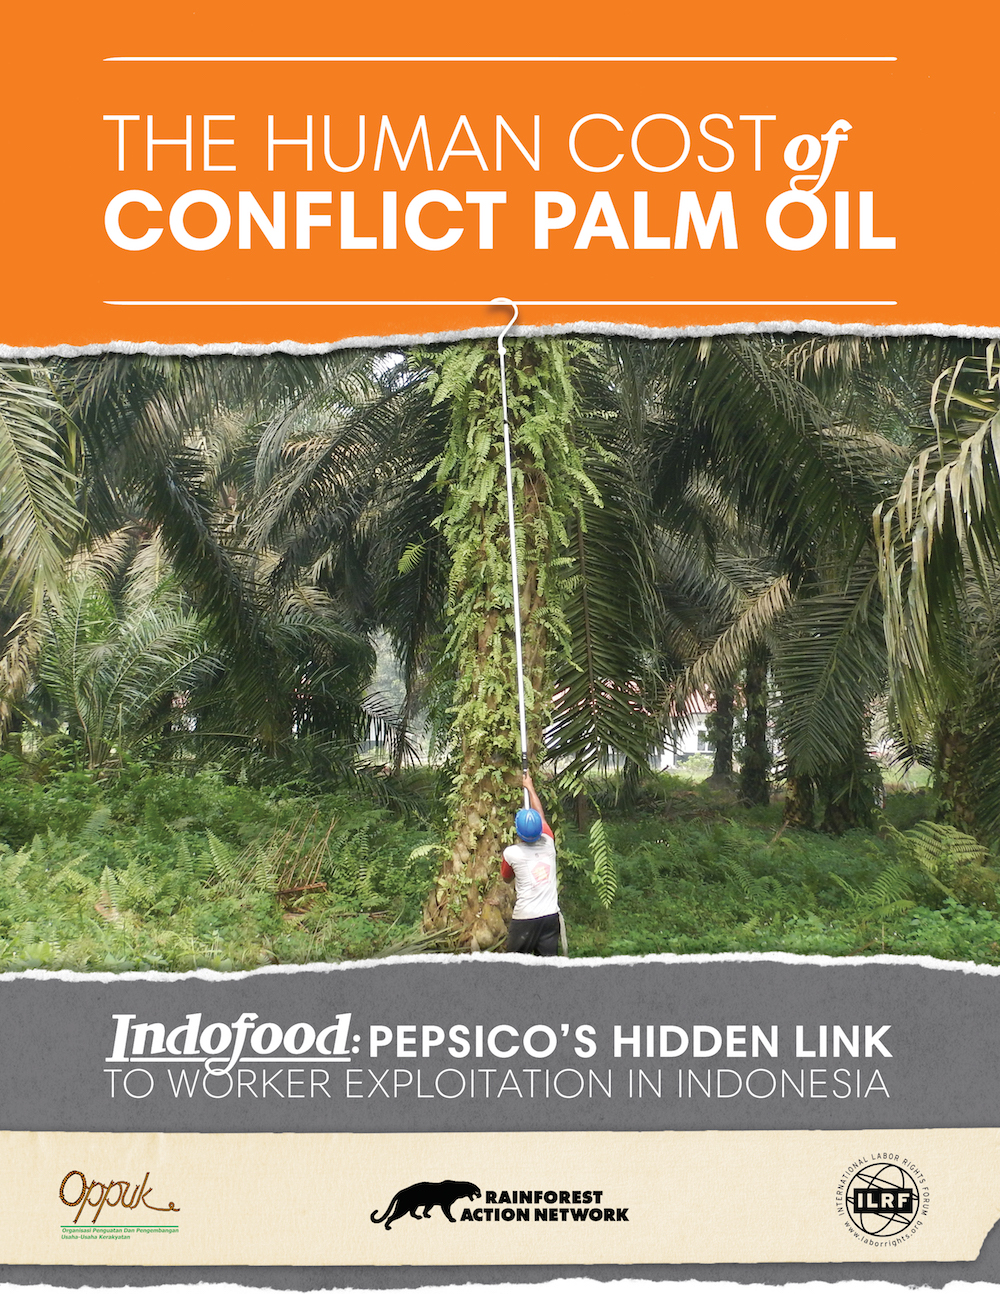 The_Human_Cost_of_Conflict_Palm_Oil_cover.jpg